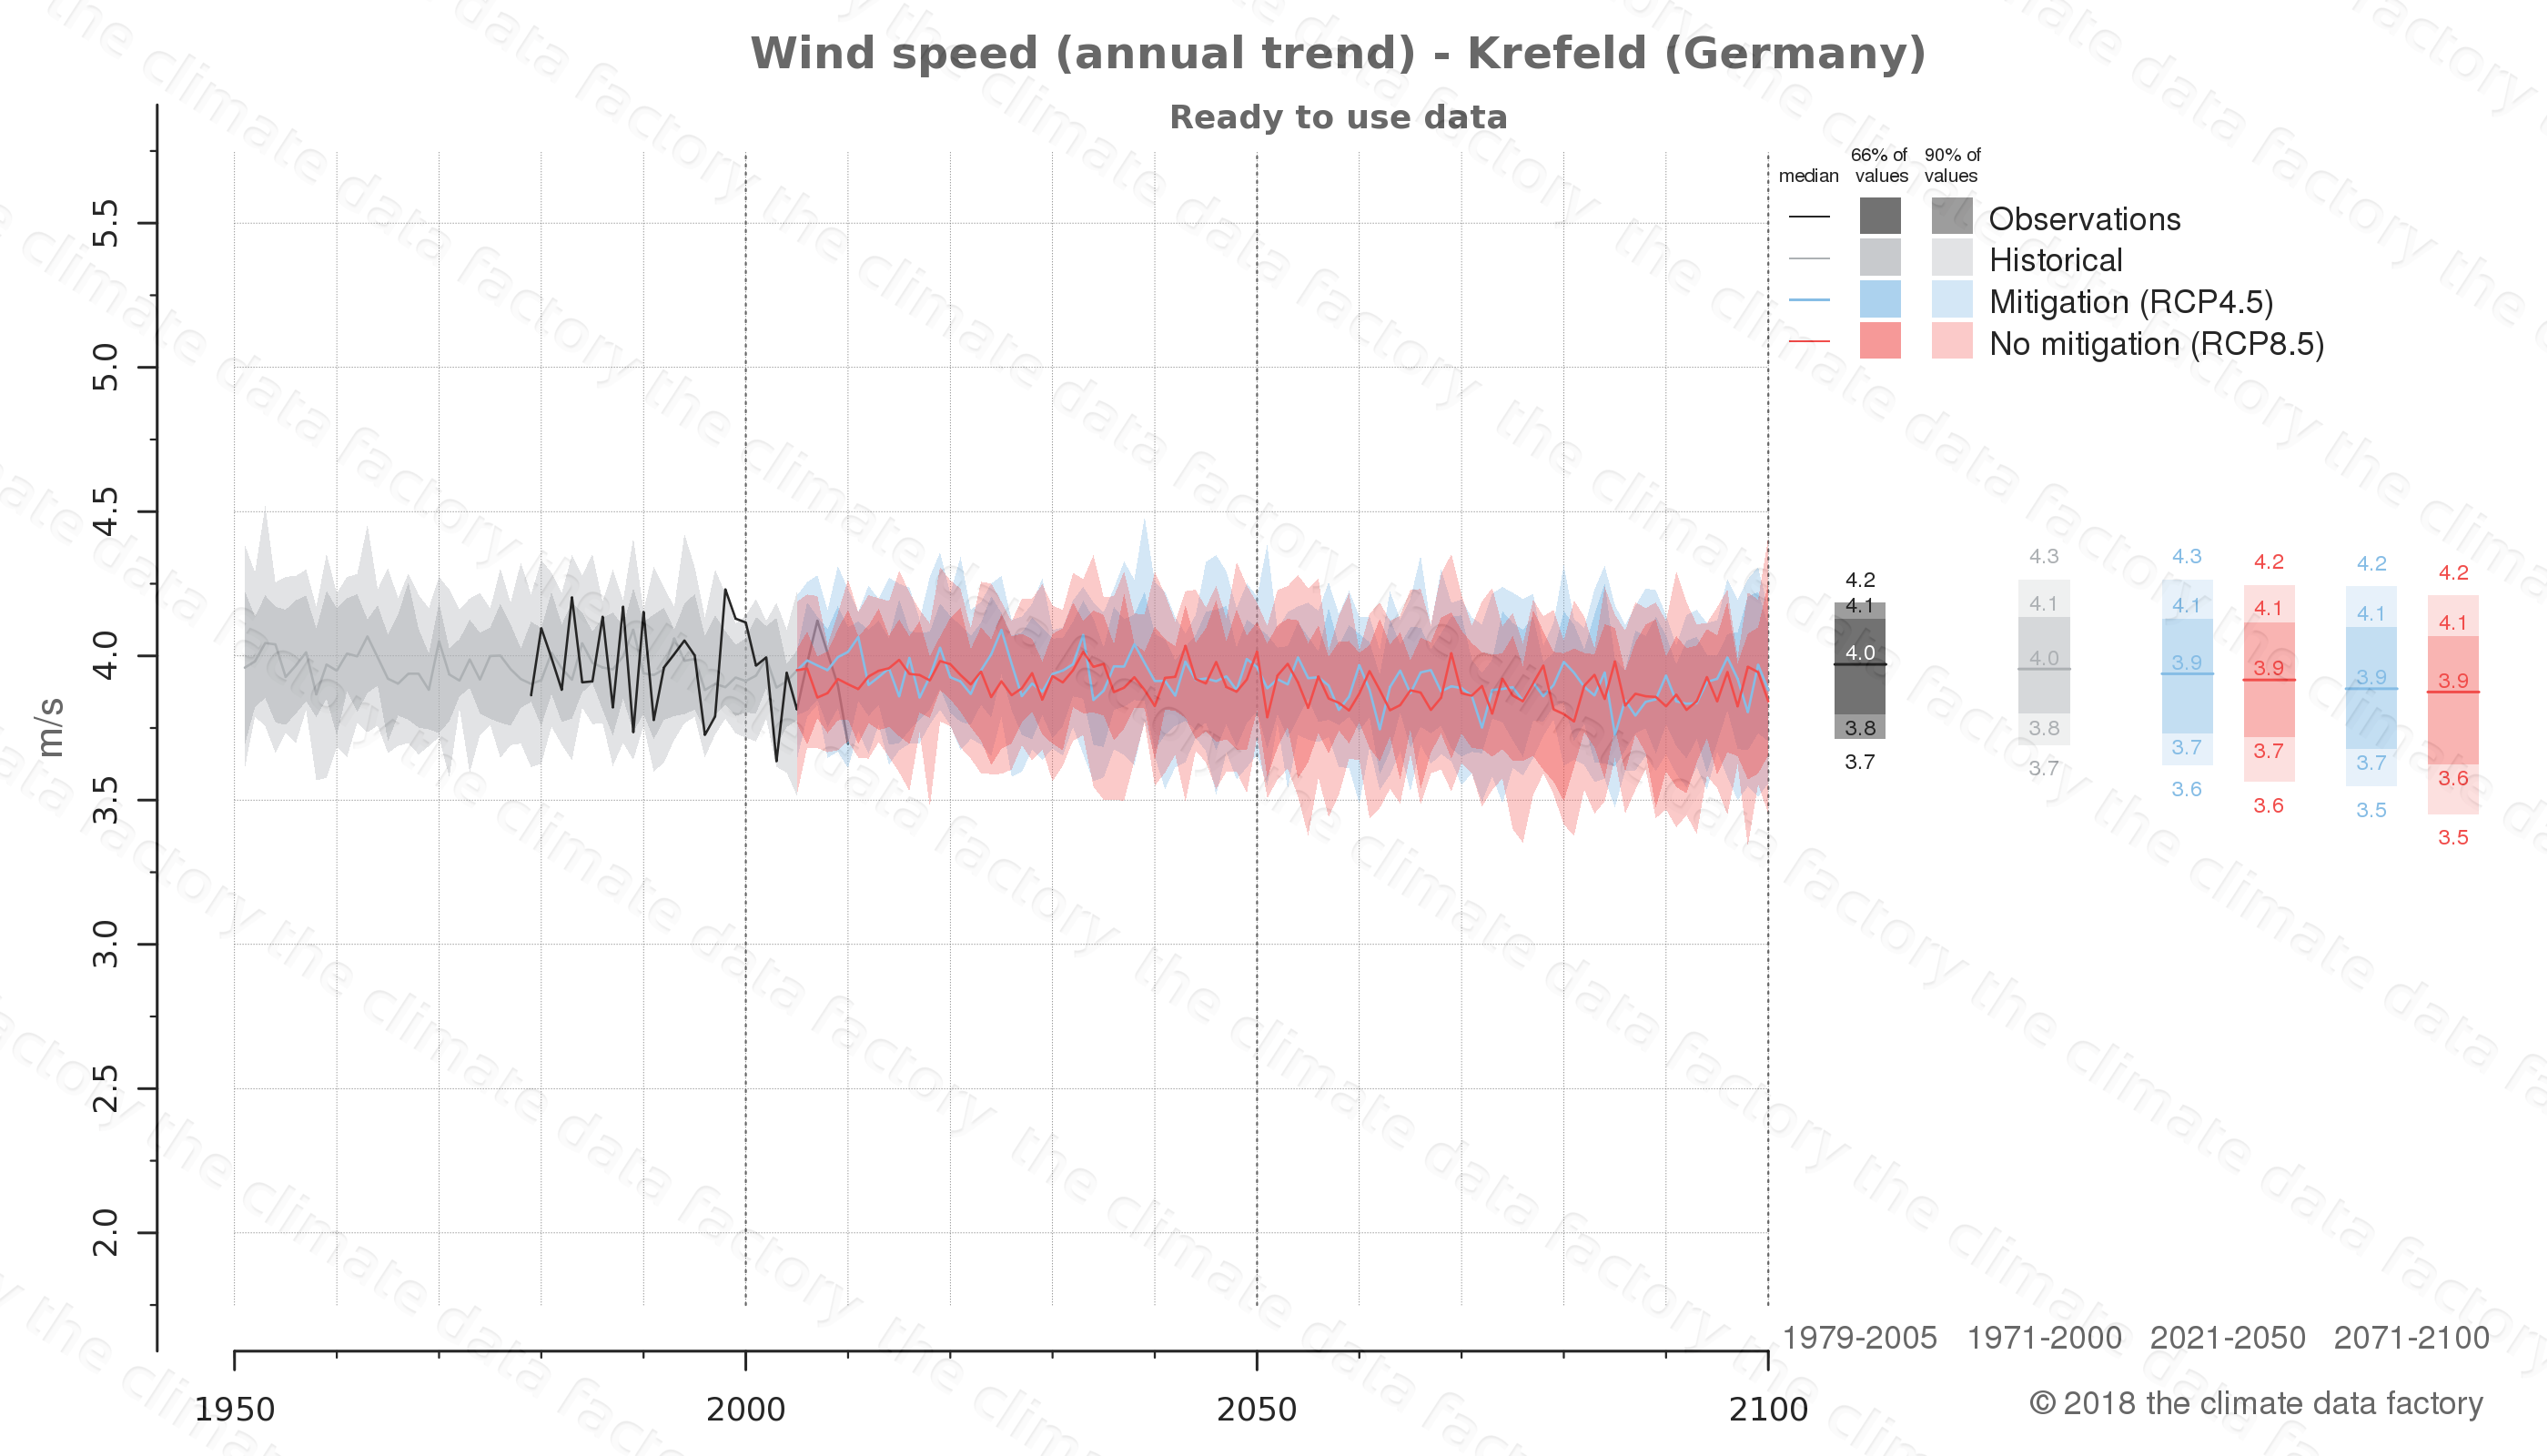 climate change data policy adaptation climate graph city data wind-speed krefeld germany